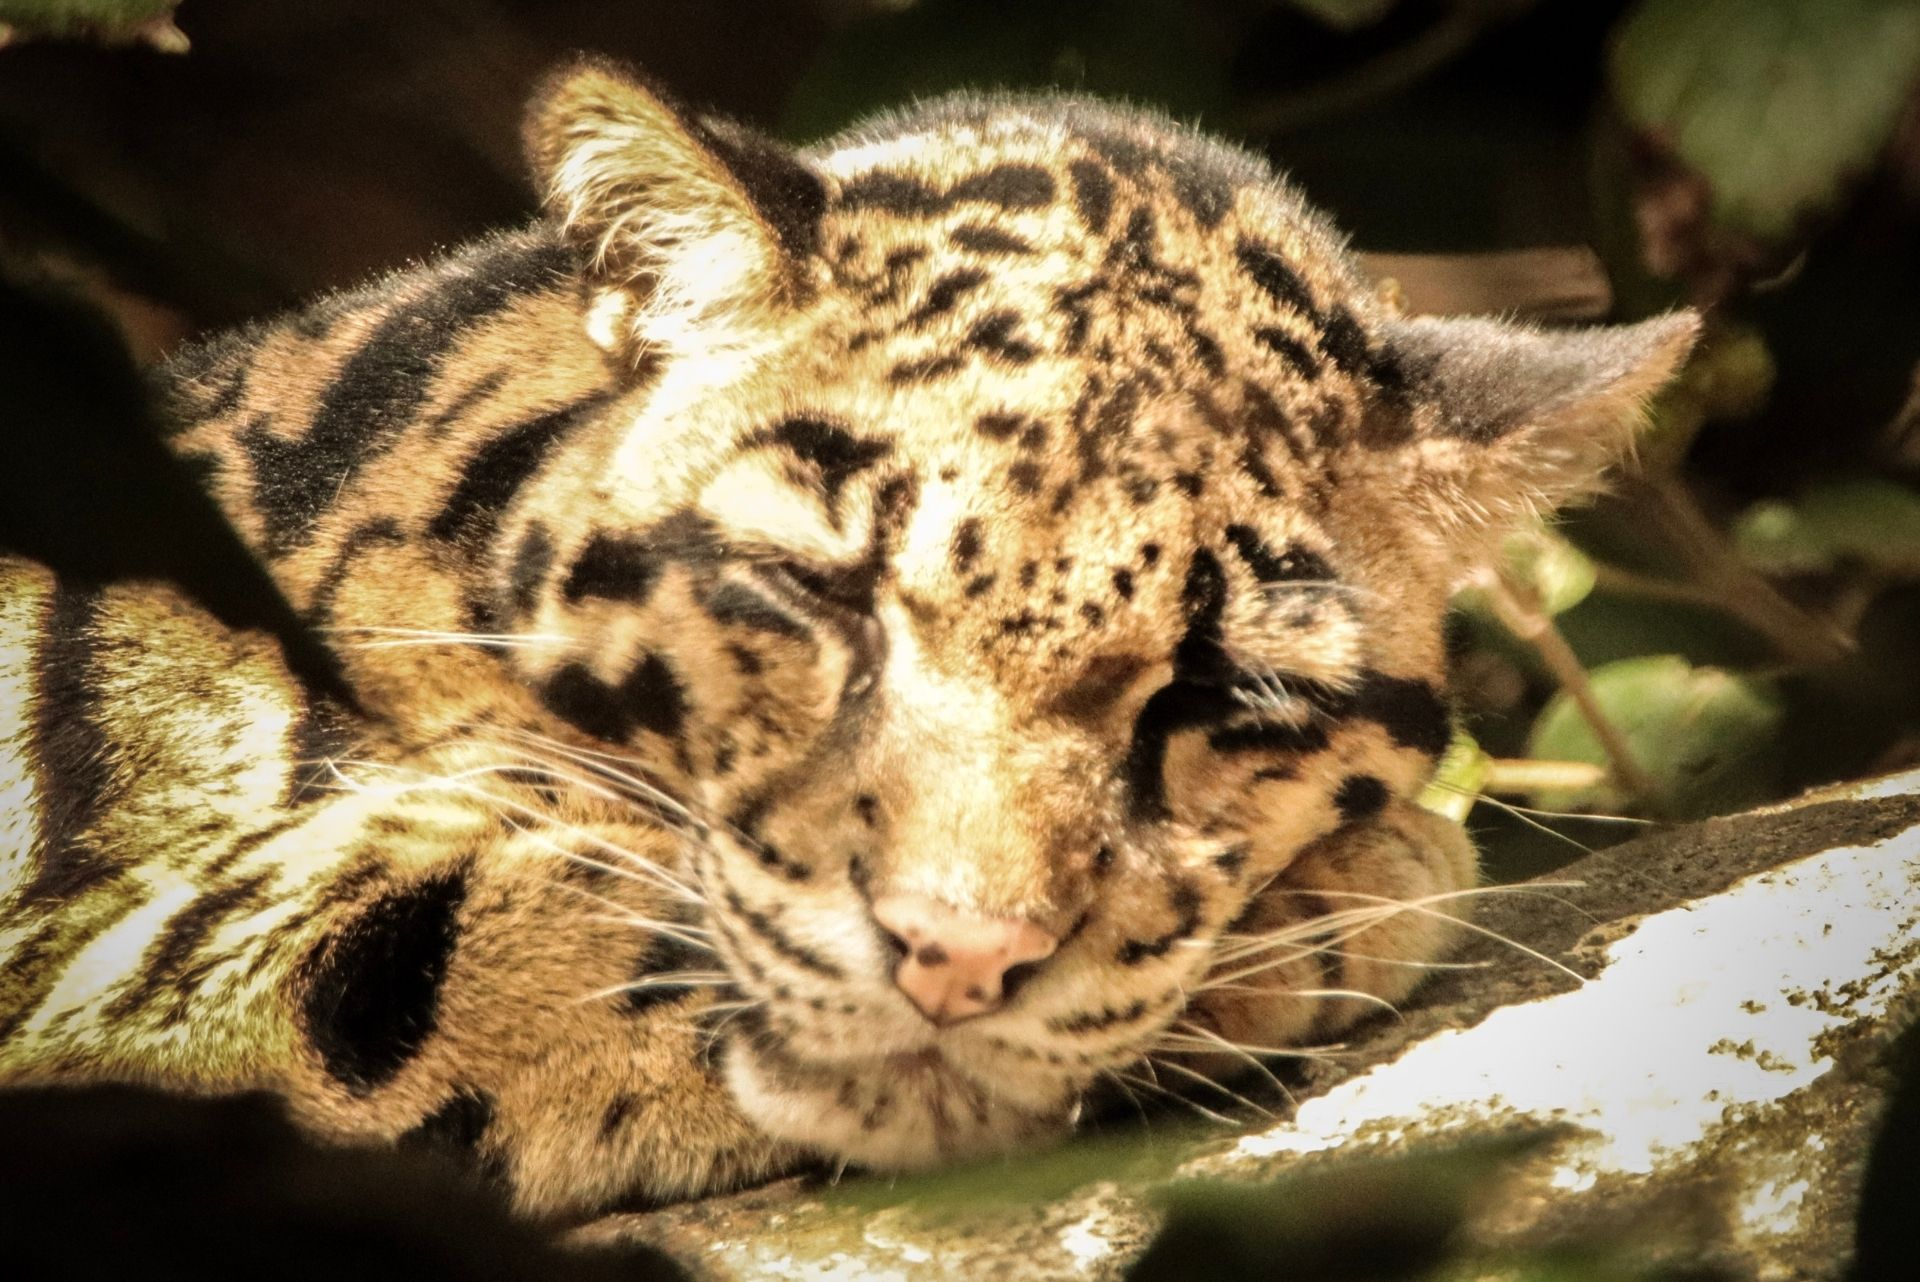 9 legal exotic pets you can own in Wisconsin